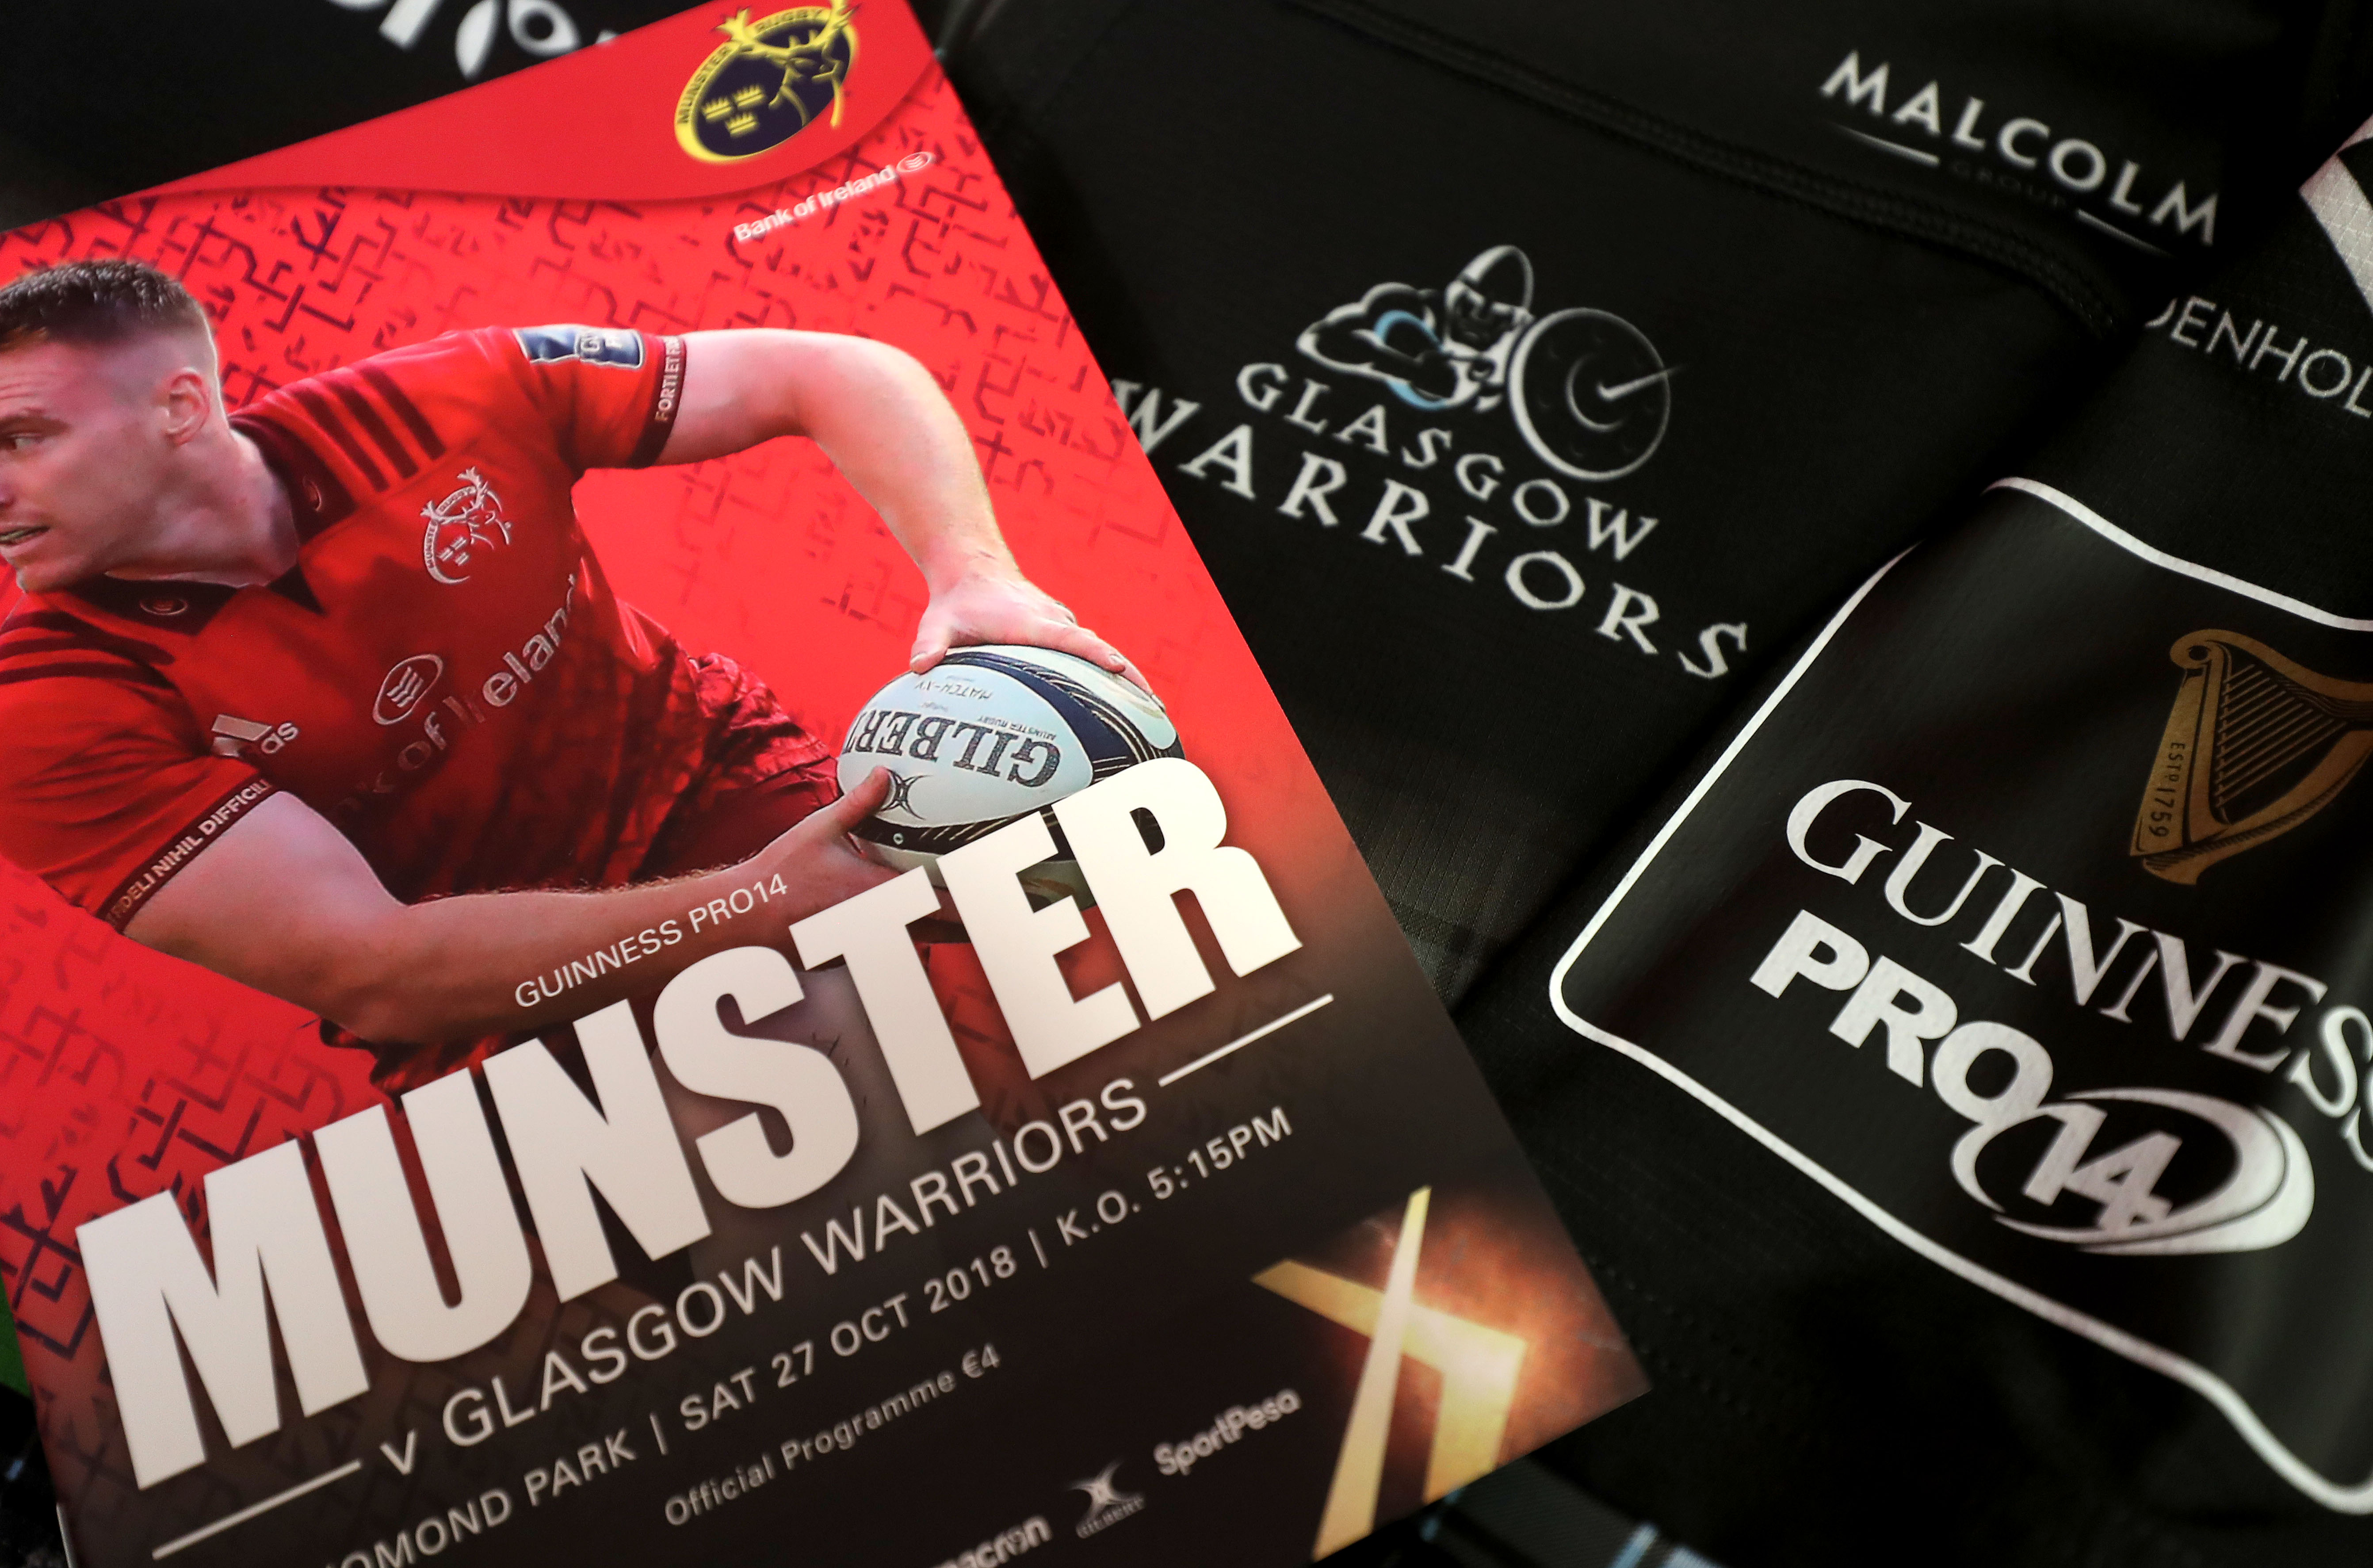 Glasgow v Munster live stream – how to watch the action from Scotstoun